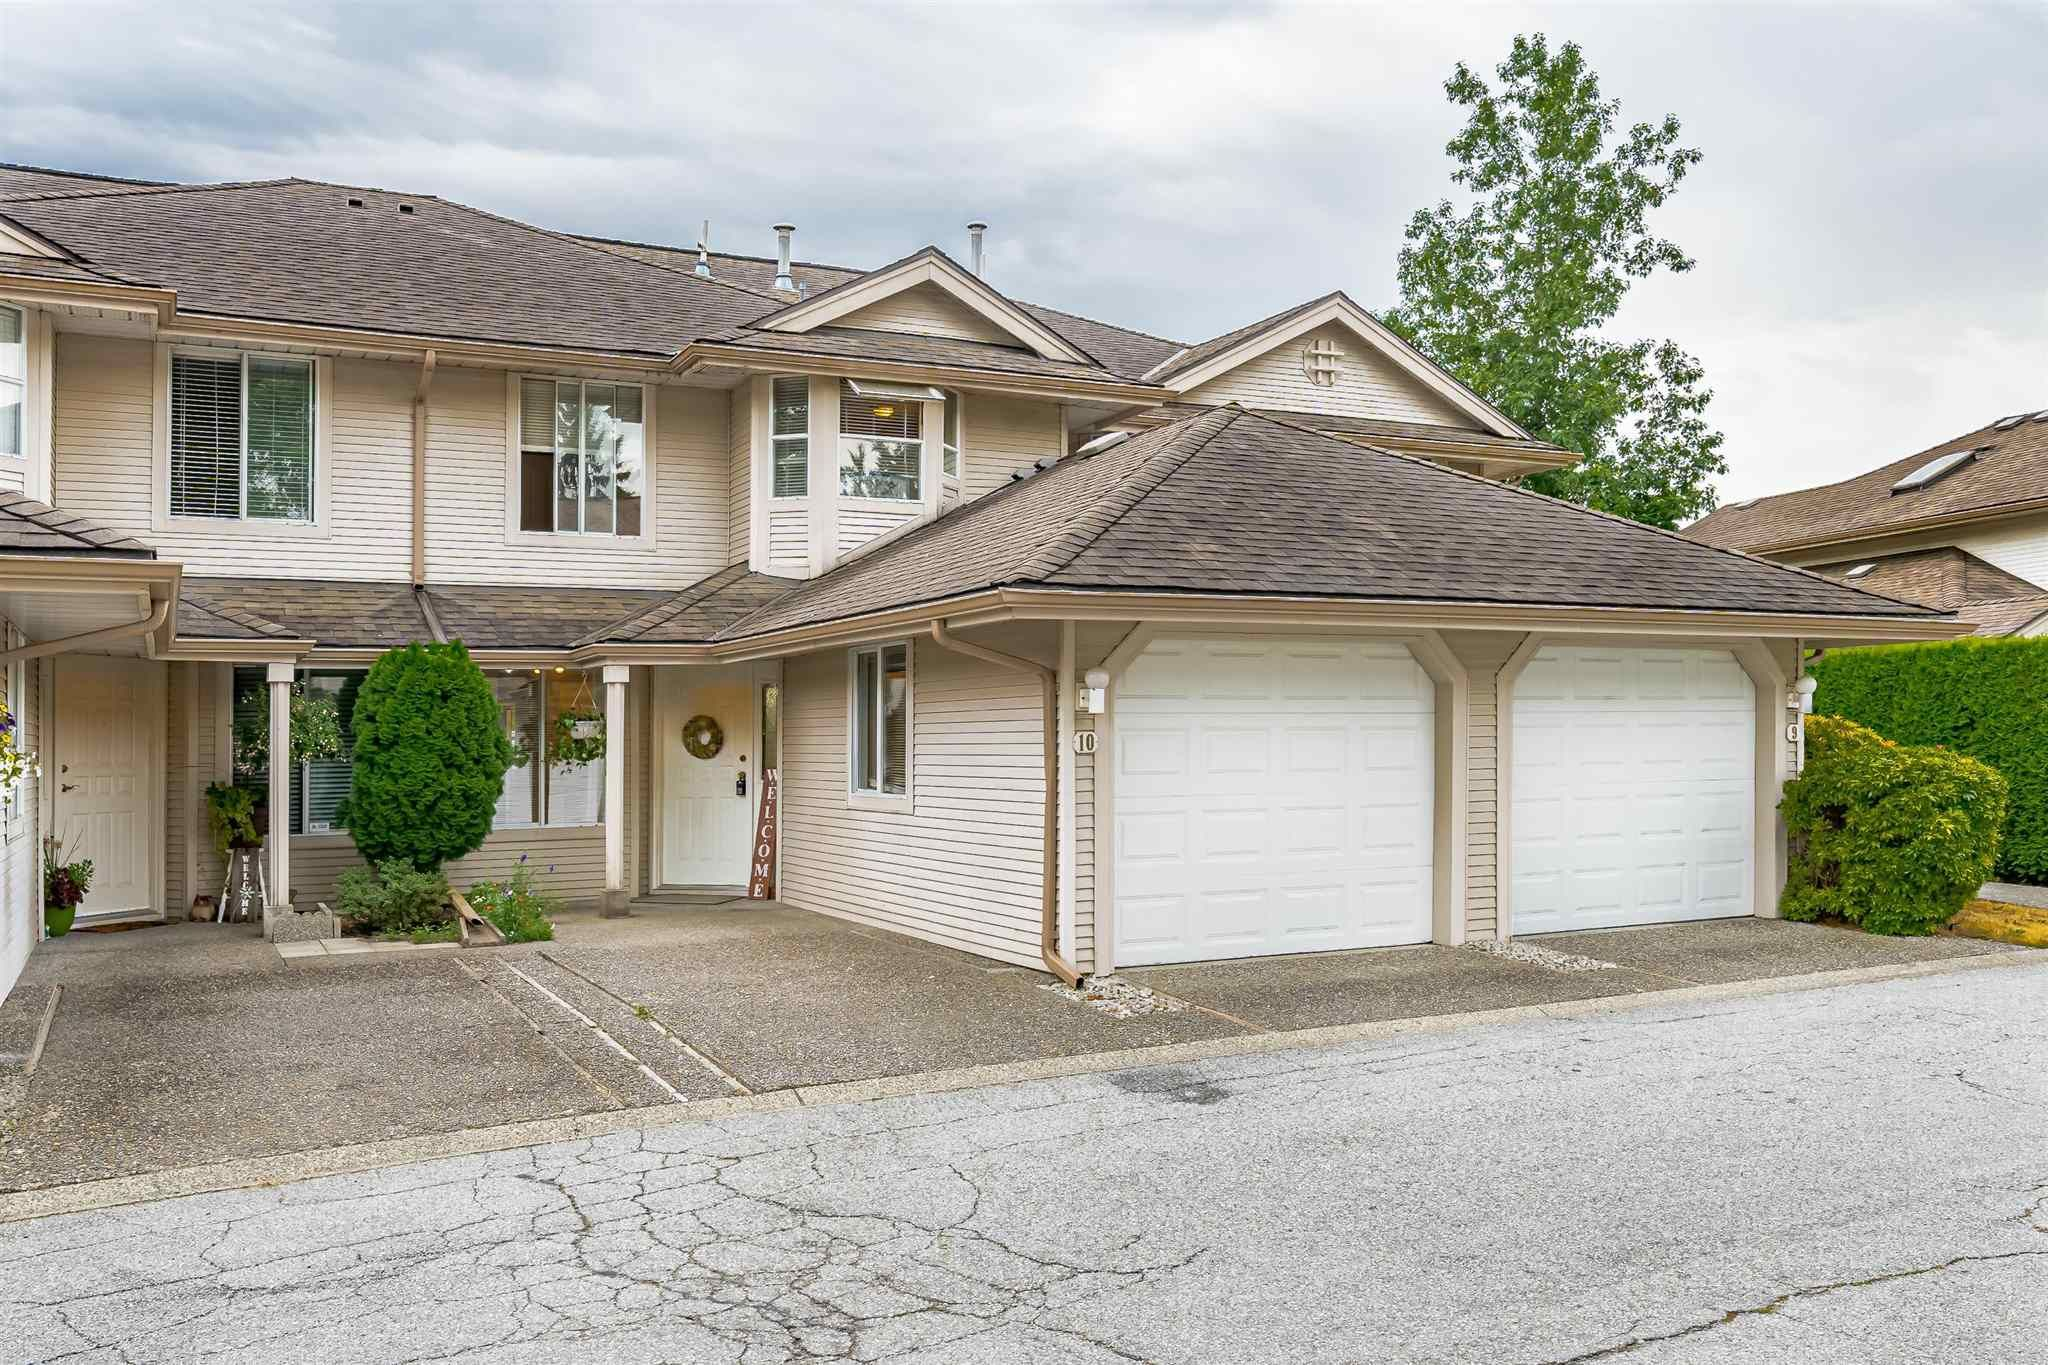 """Main Photo: 10 9045 WALNUT GROVE Drive in Langley: Walnut Grove Townhouse for sale in """"BRIDLEWOODS"""" : MLS®# R2606404"""